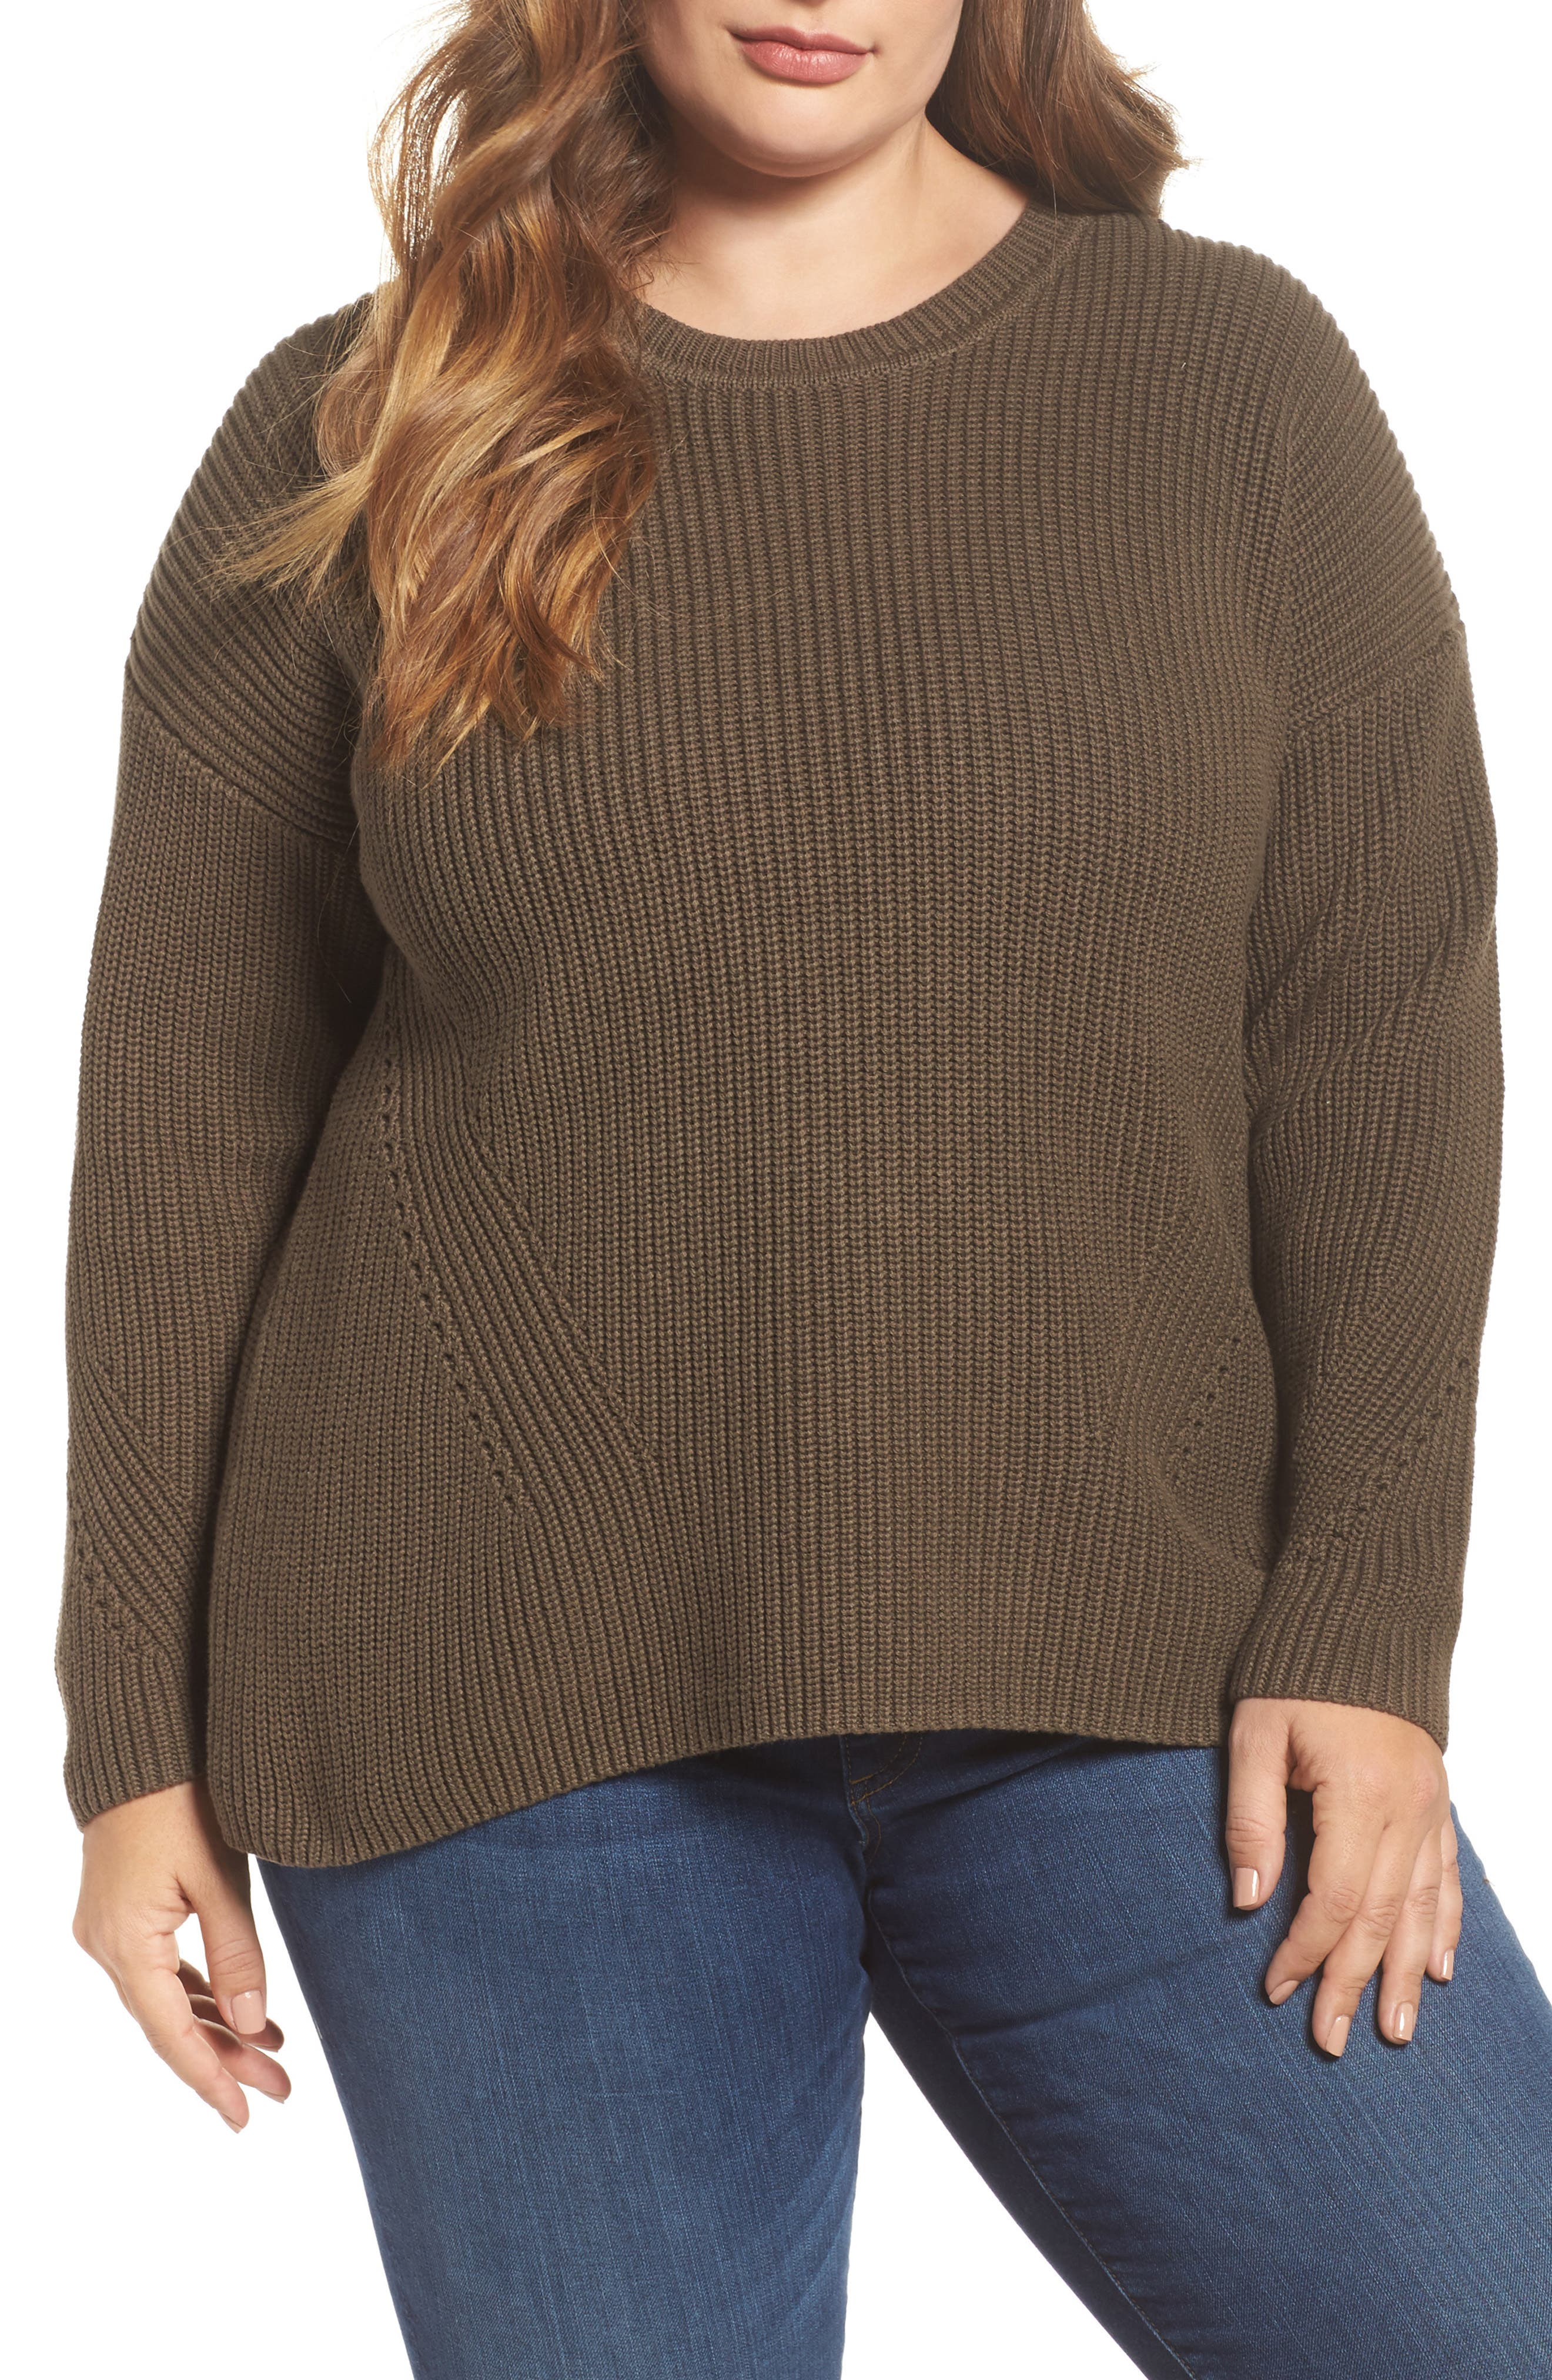 Lace-Up Back Sweater,                         Main,                         color, Olive